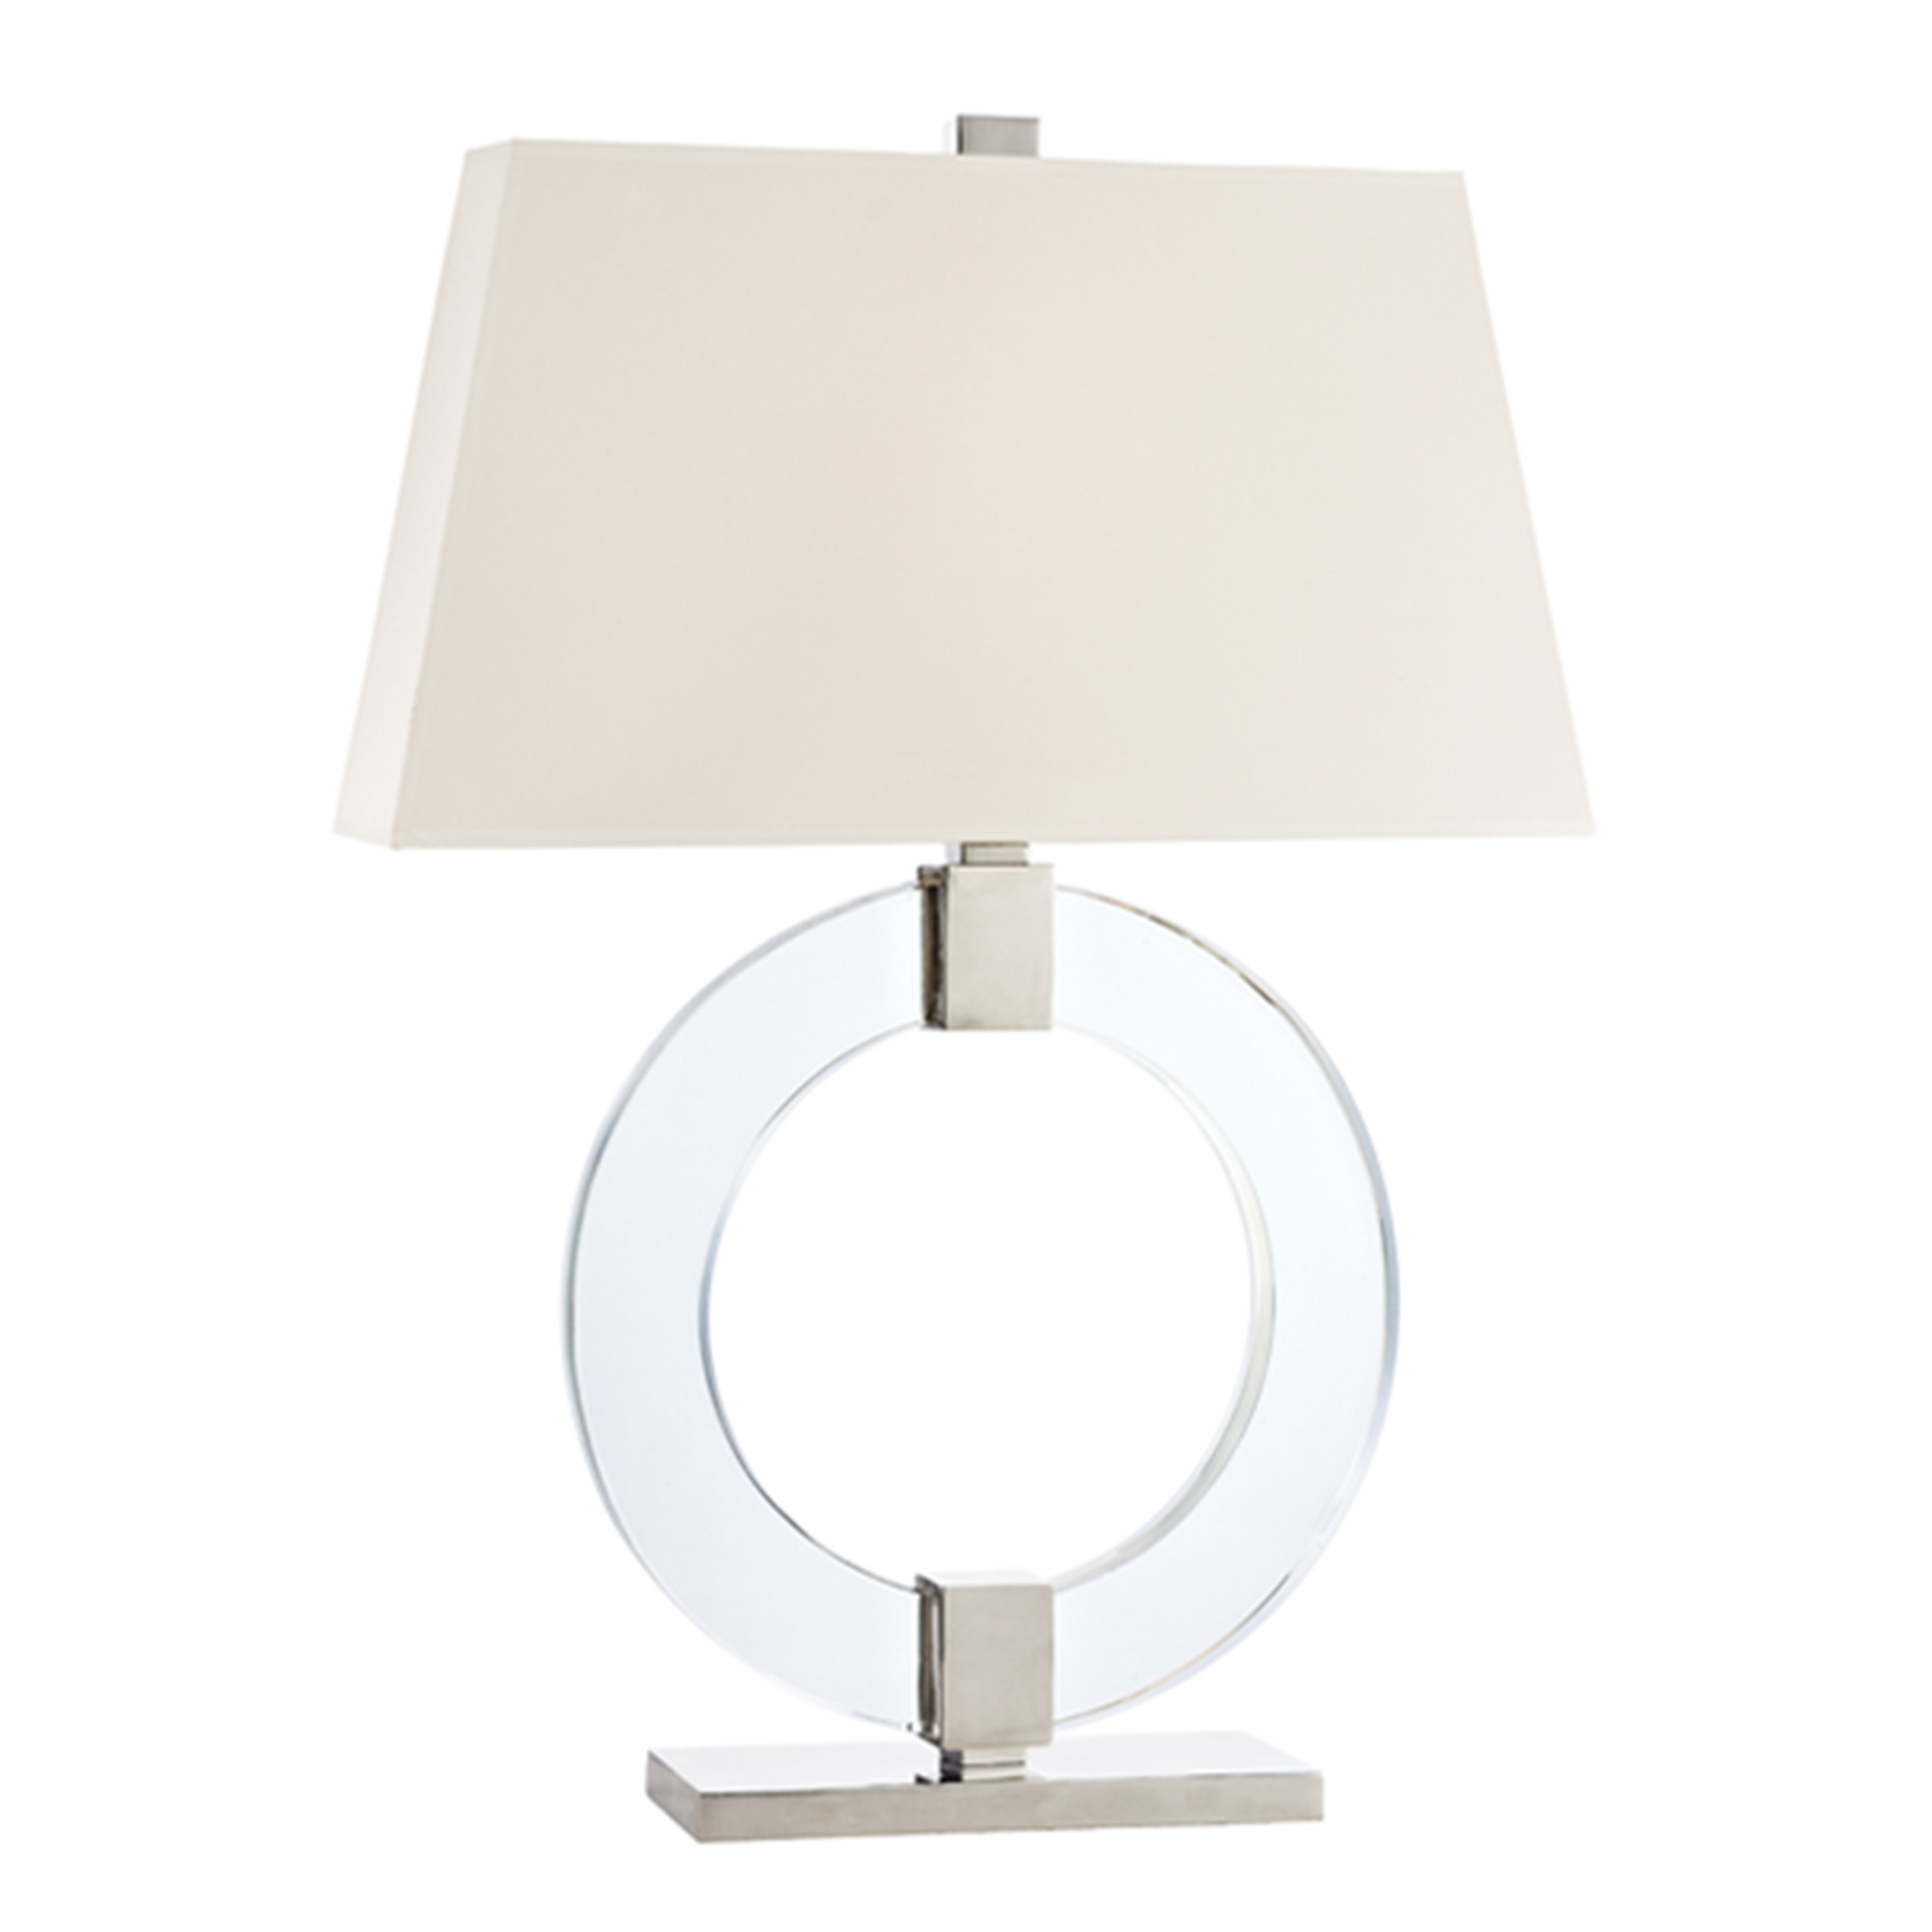 Circle Lamp The Tailored Home